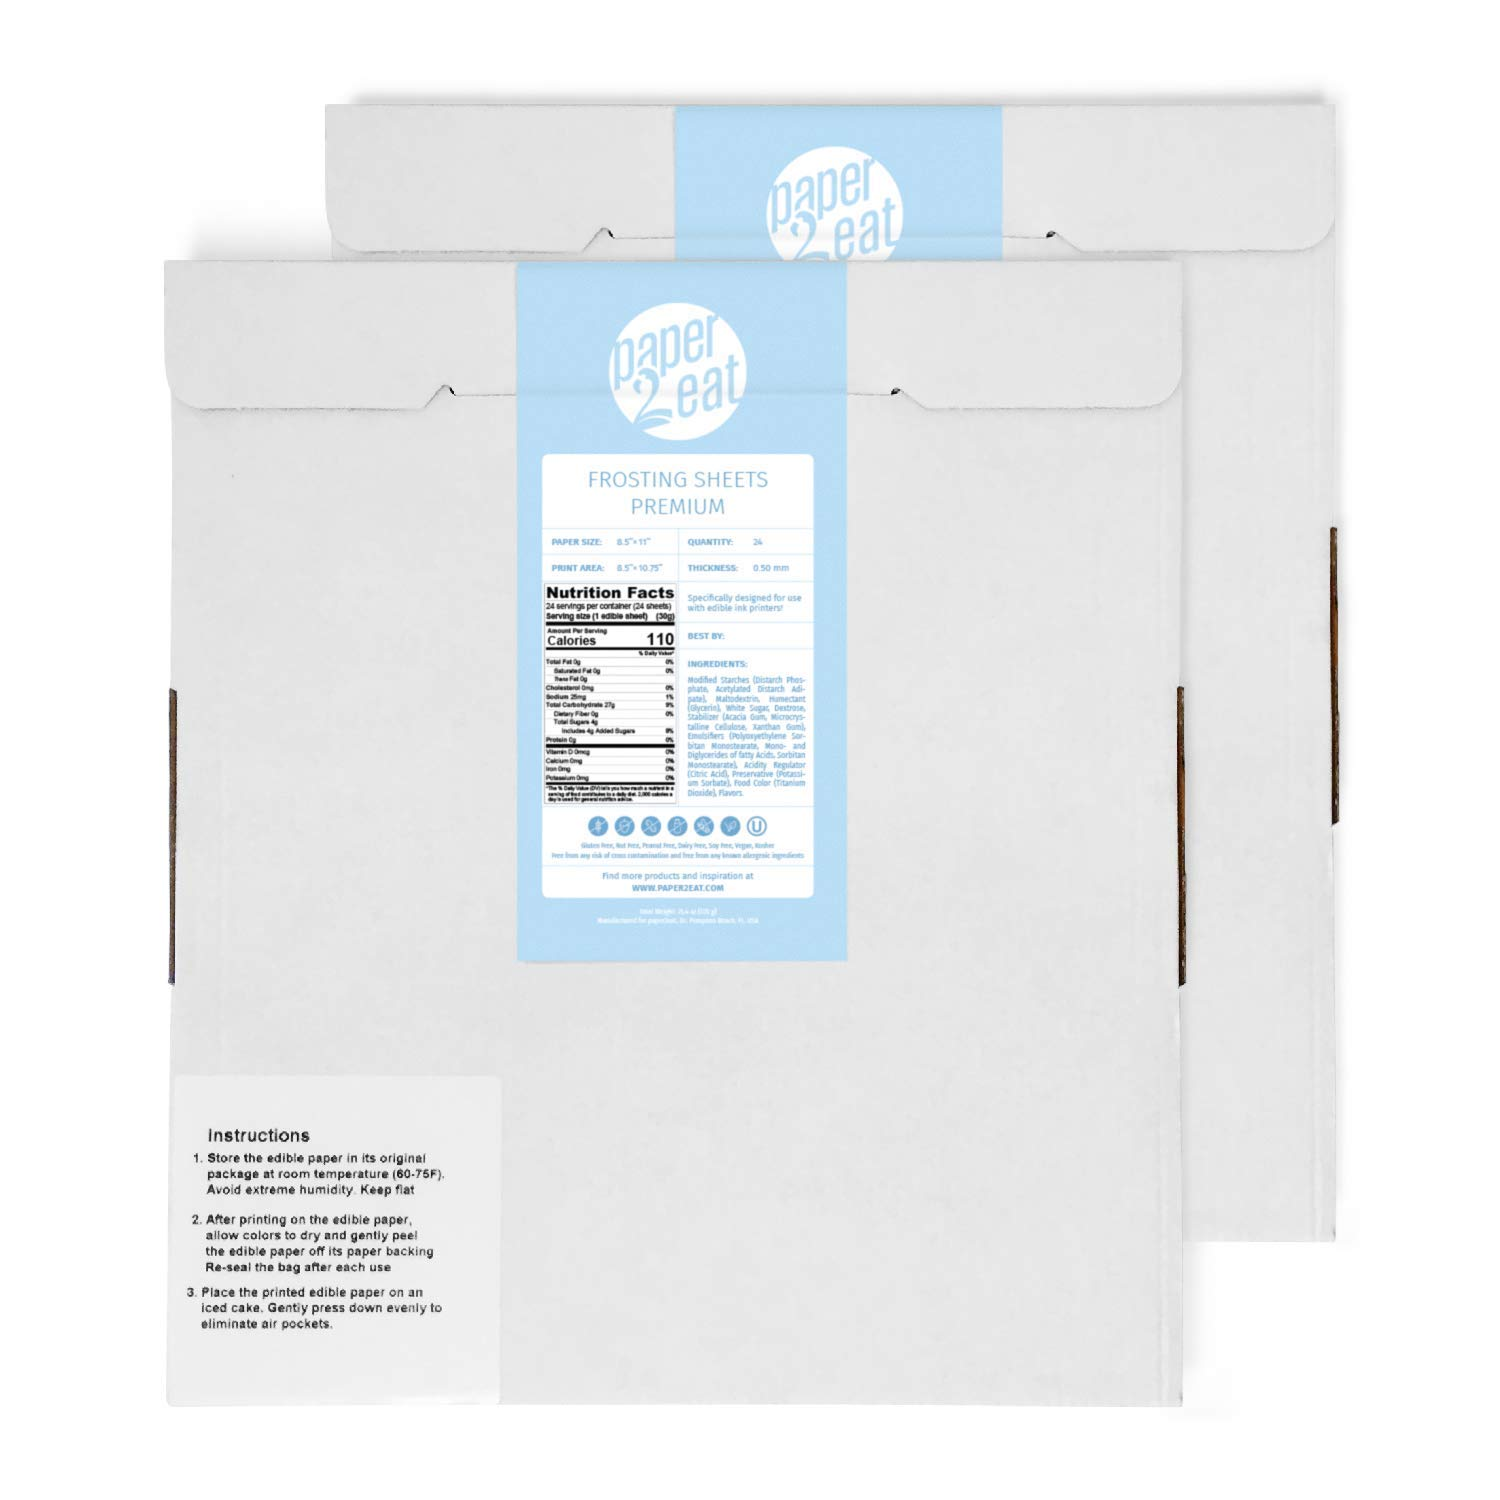 12 to 48 count Lucks Print Ons Edible Paper Print-Ons  Sheets  8.5 x 11 Inch